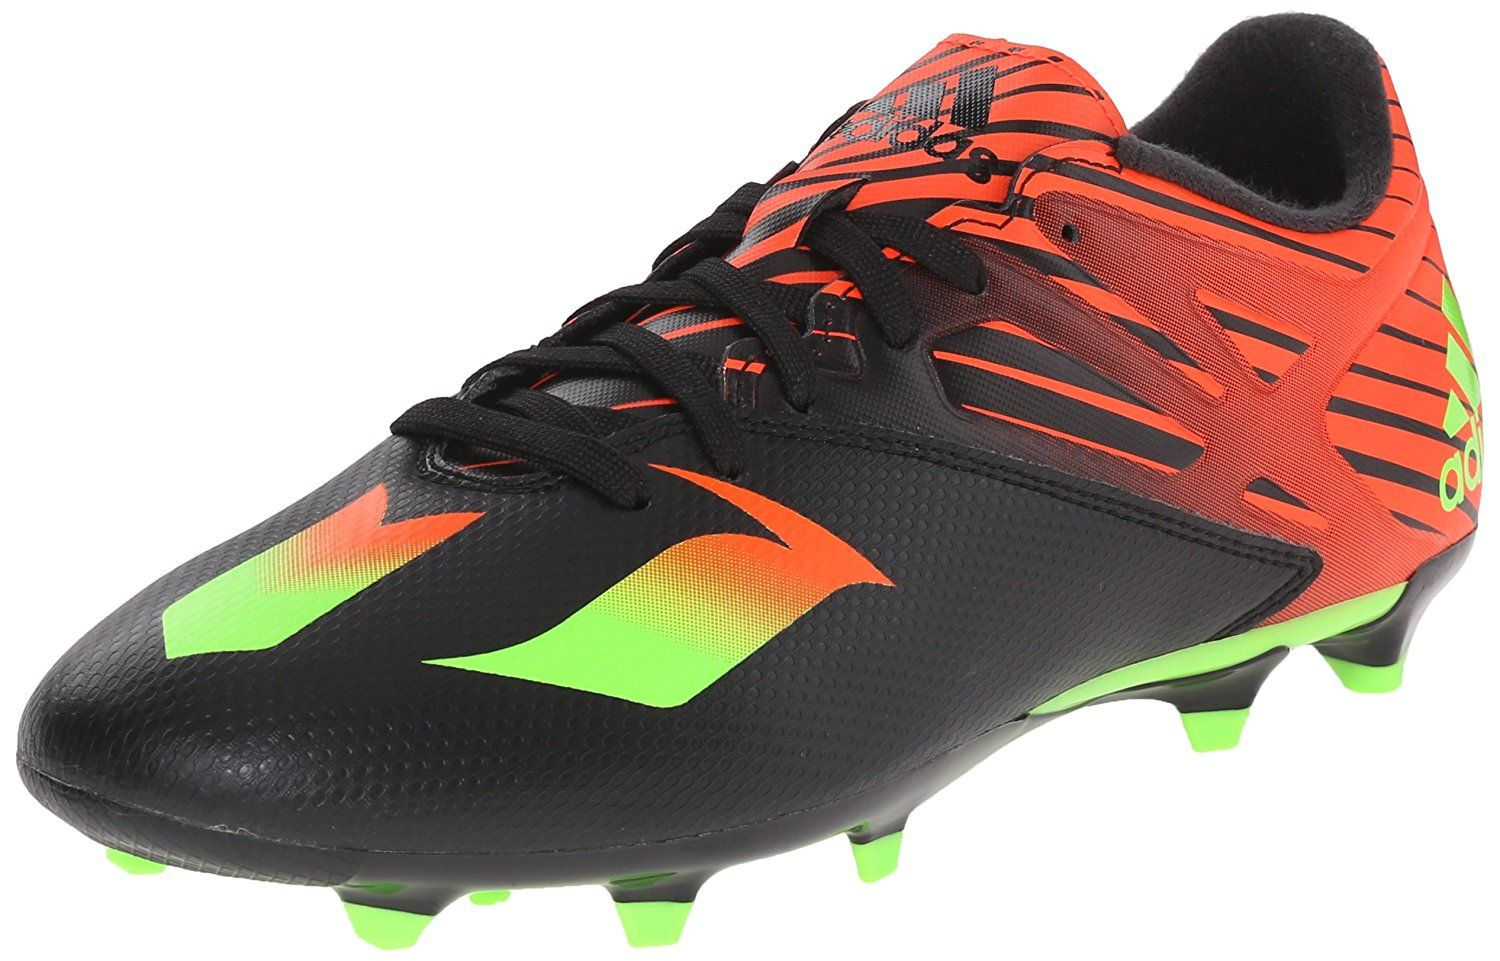 adidas Performance Men's Messi 15.3 Soccer Cleat is one of the best soccer  cleats in our